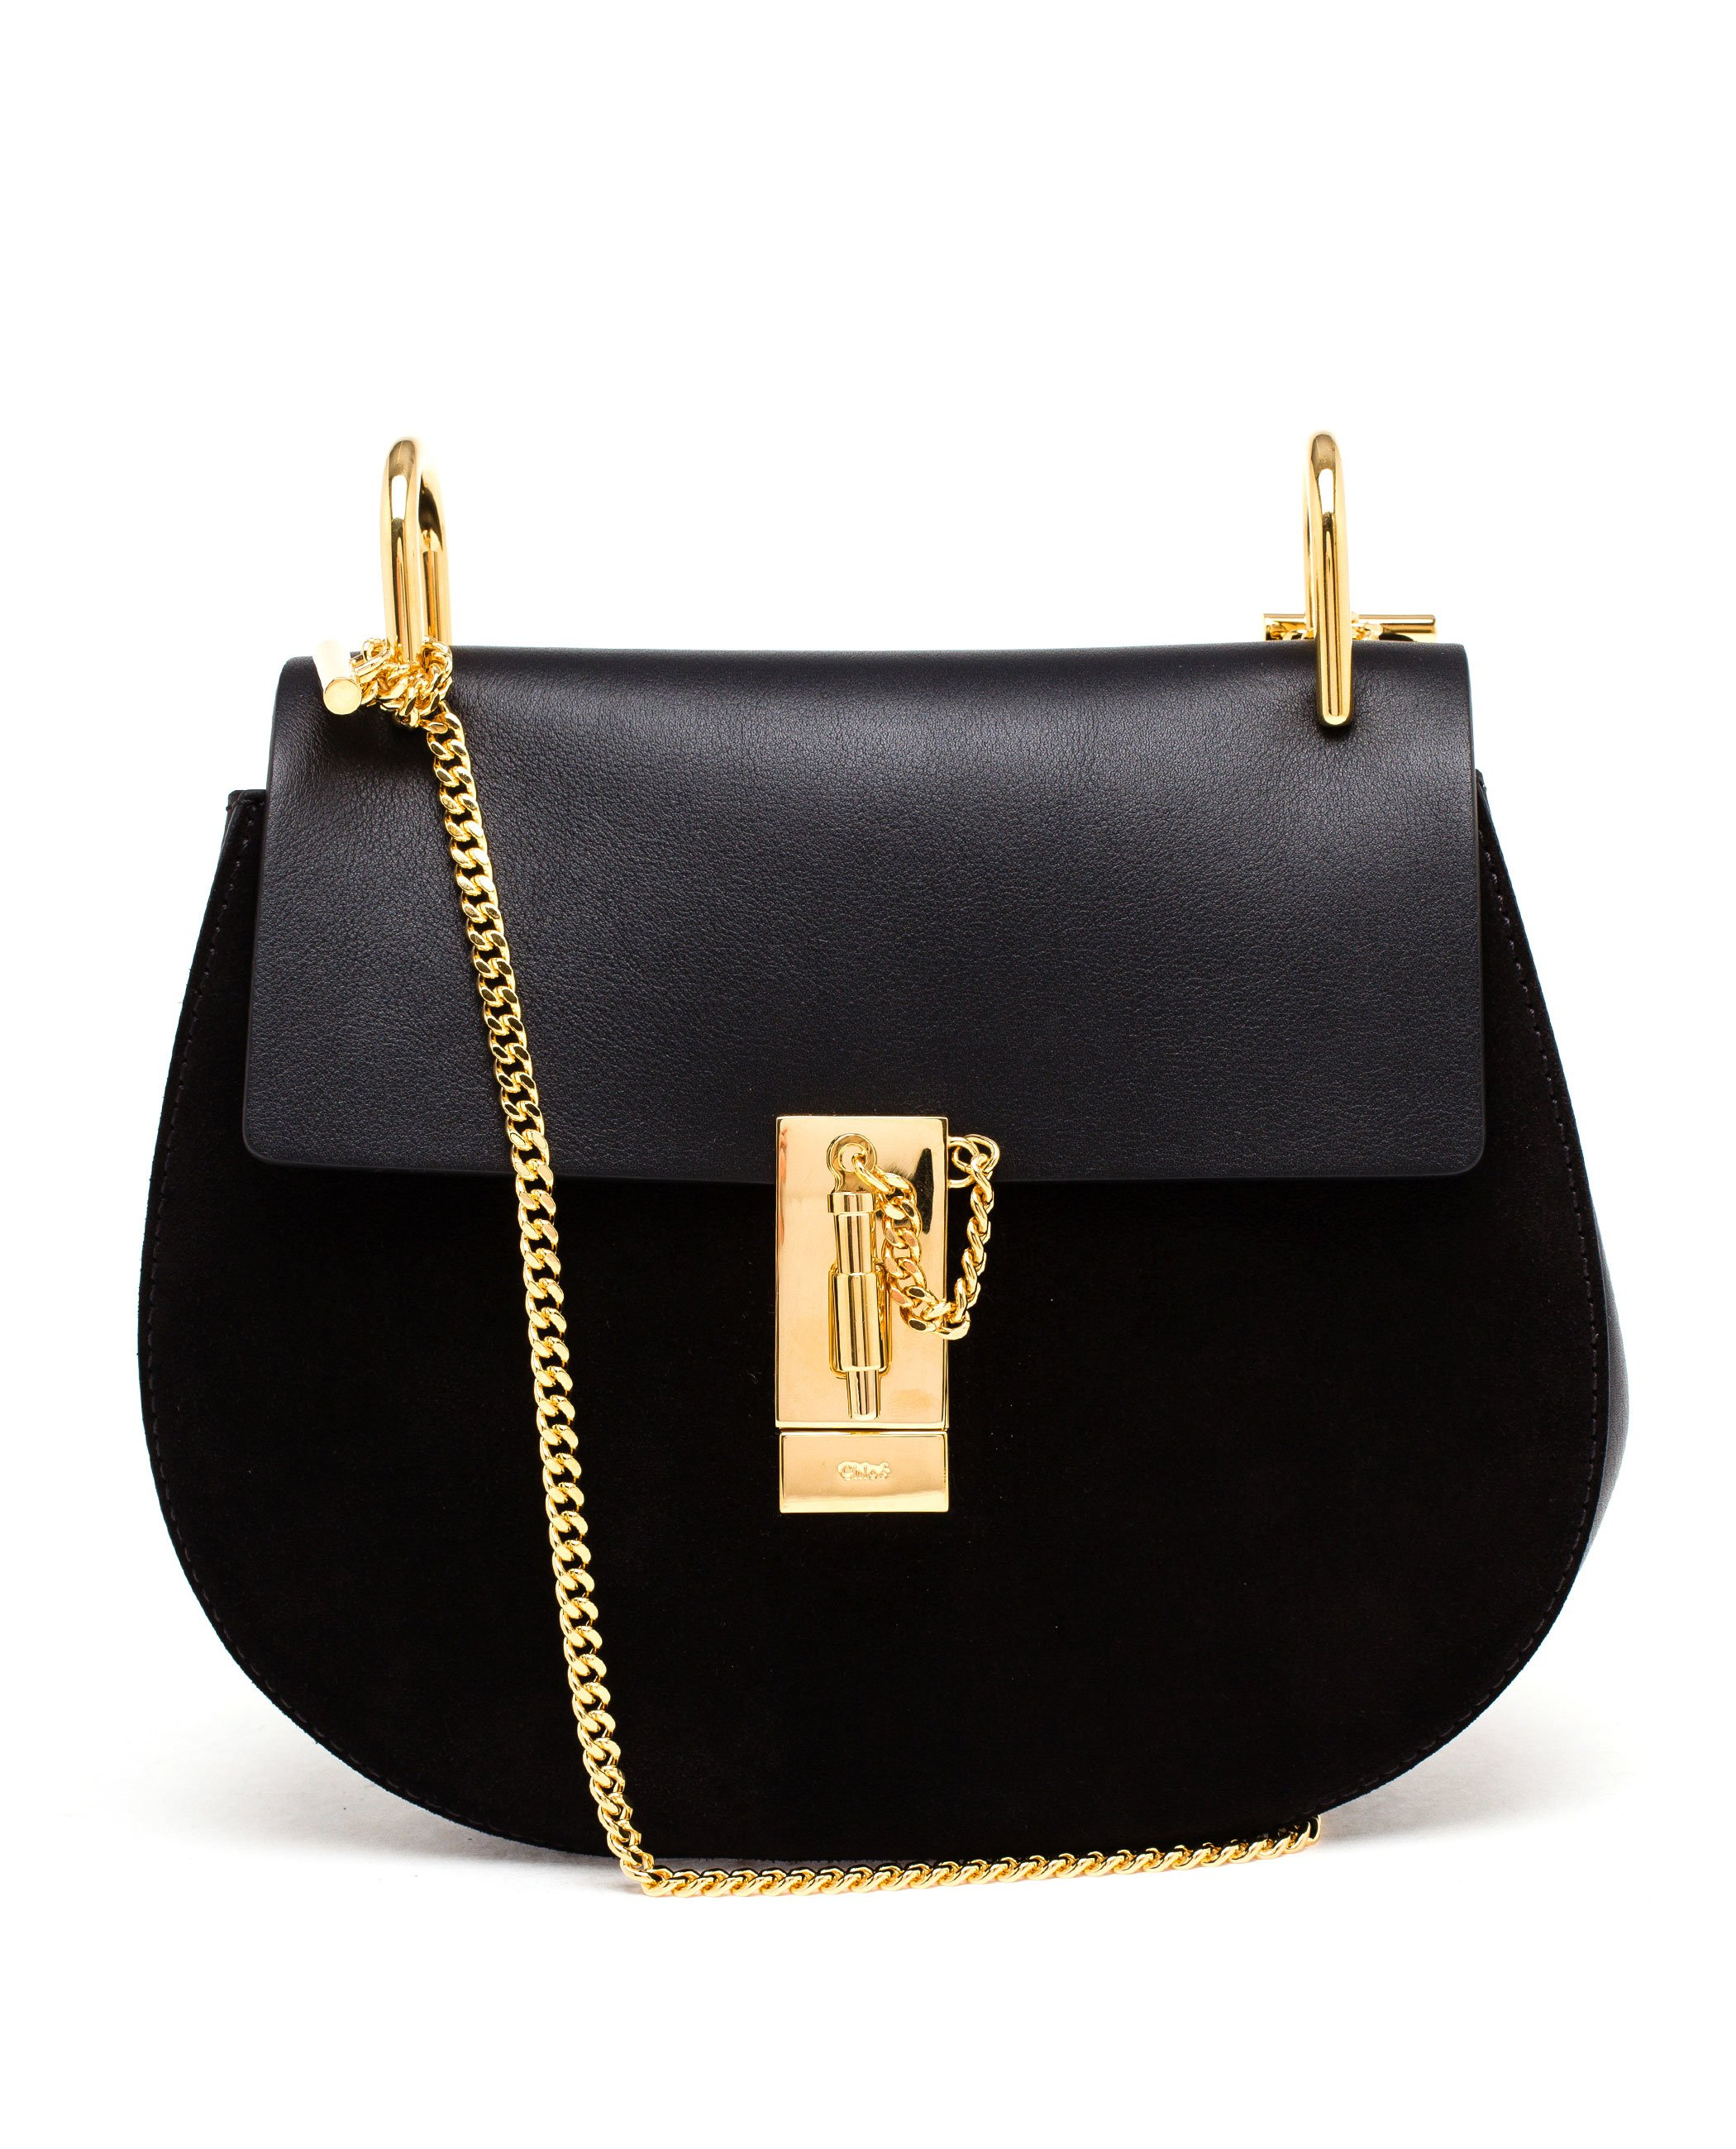 Chloé Suede And Leather Drew Bag in Black | Lyst